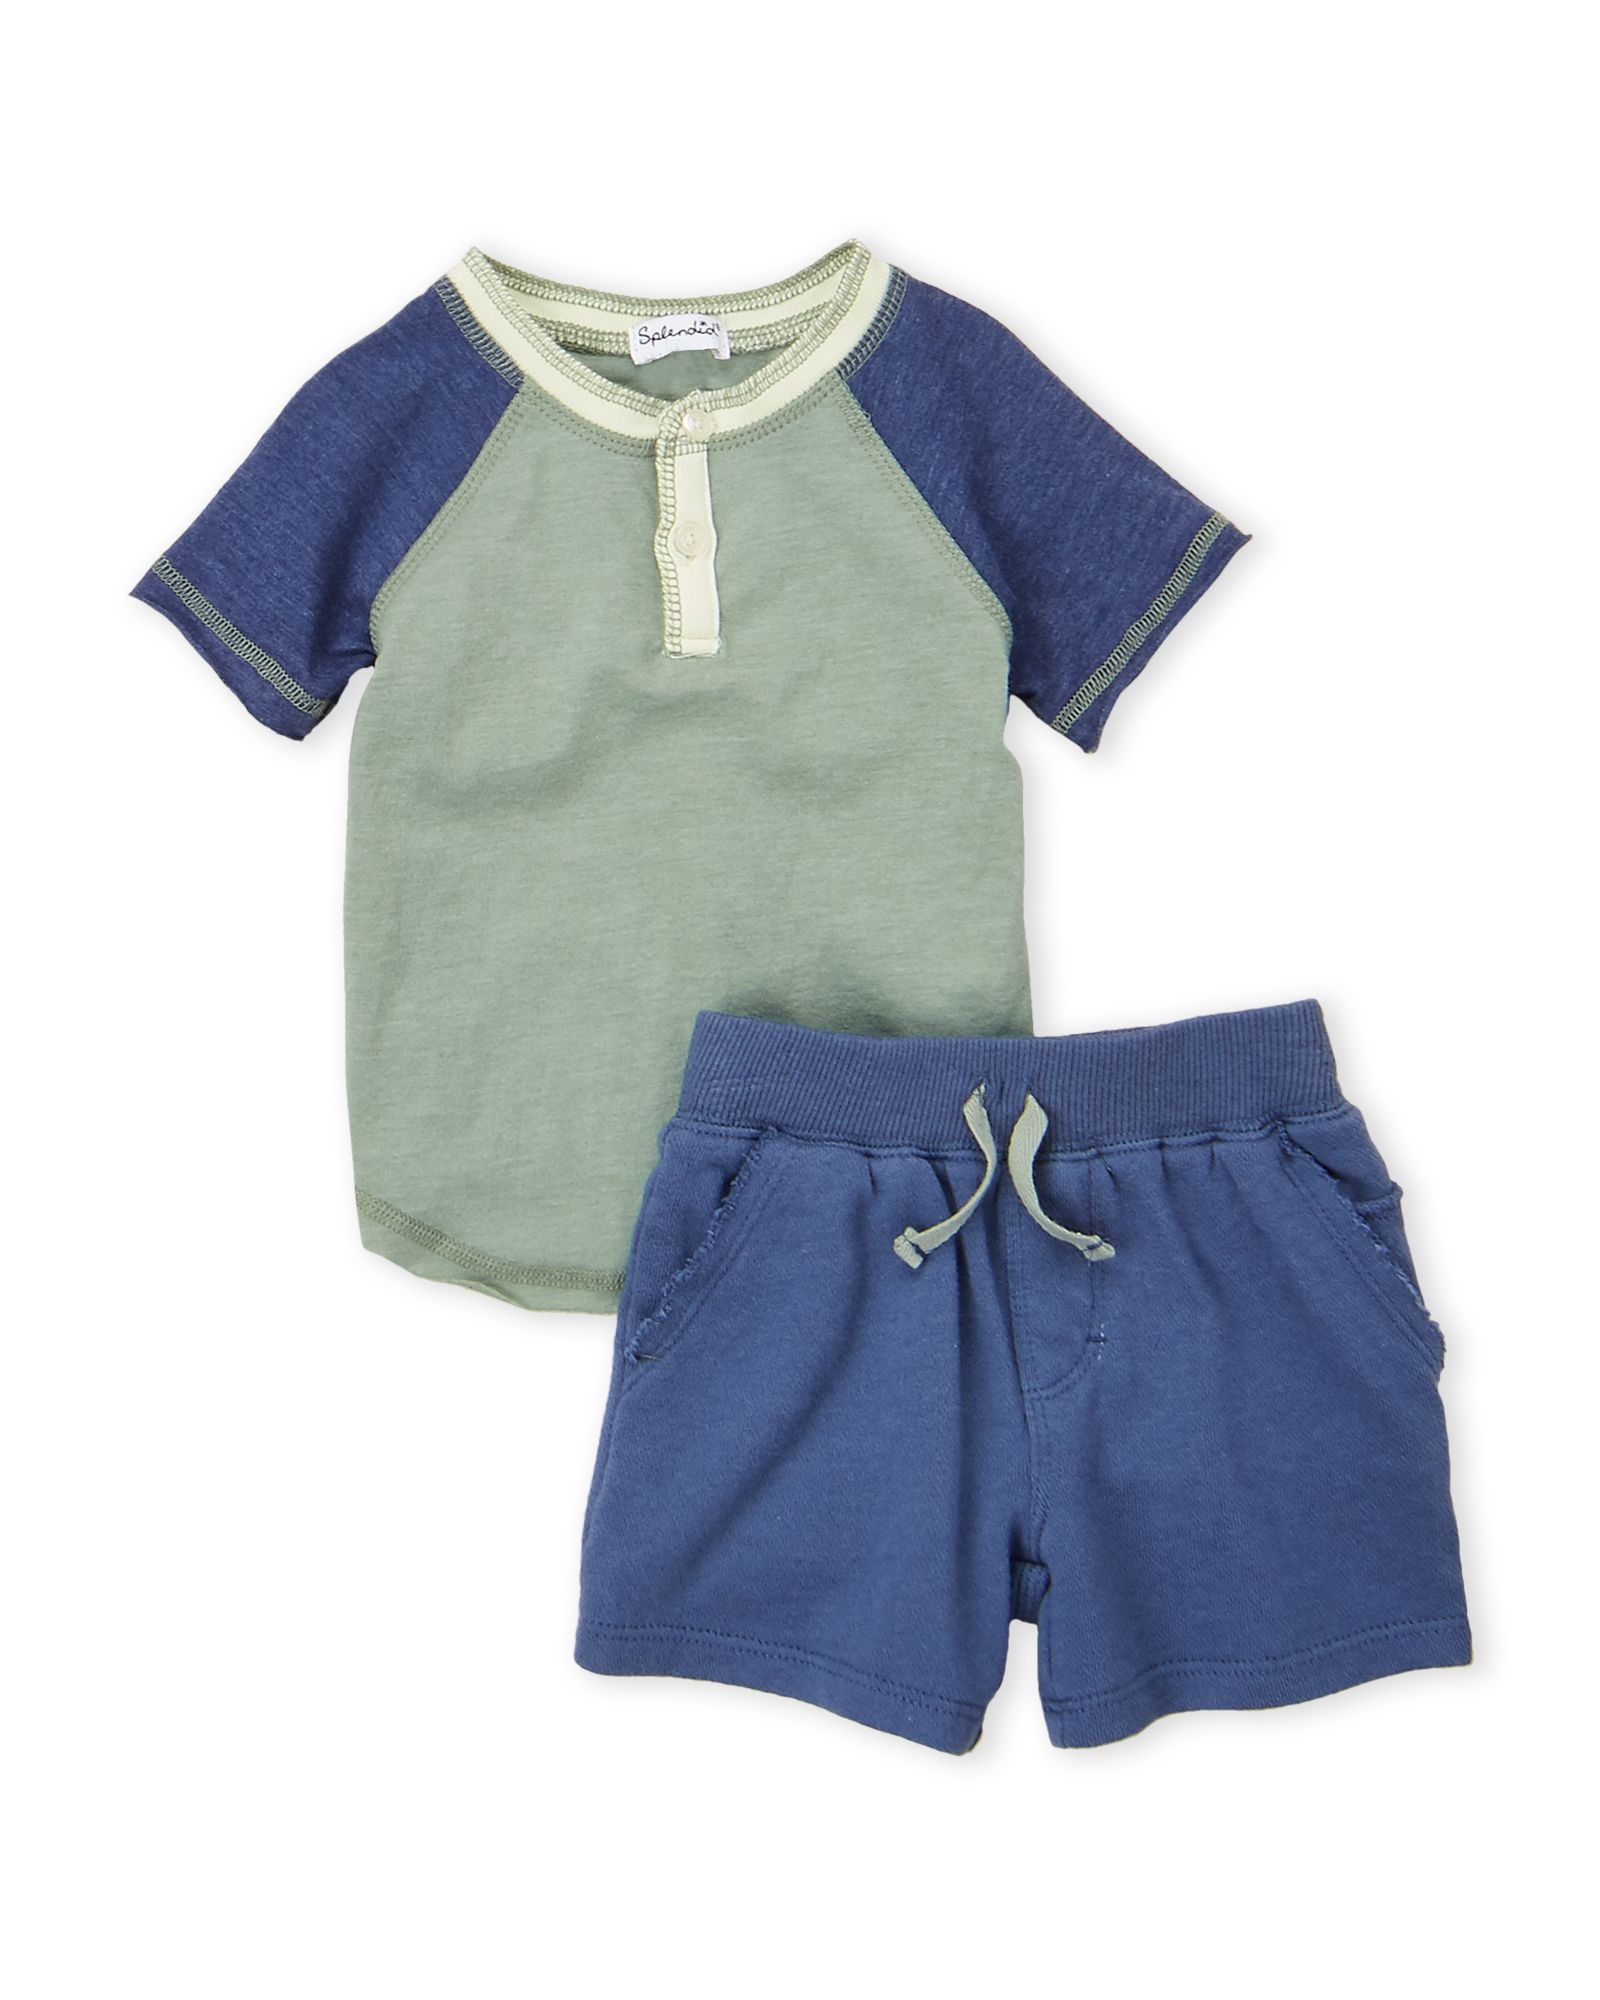 c84aeb2a1b0d5 Newborn/Infant Boys) Two-Piece Henley Tee & Shorts Set in 2019 ...